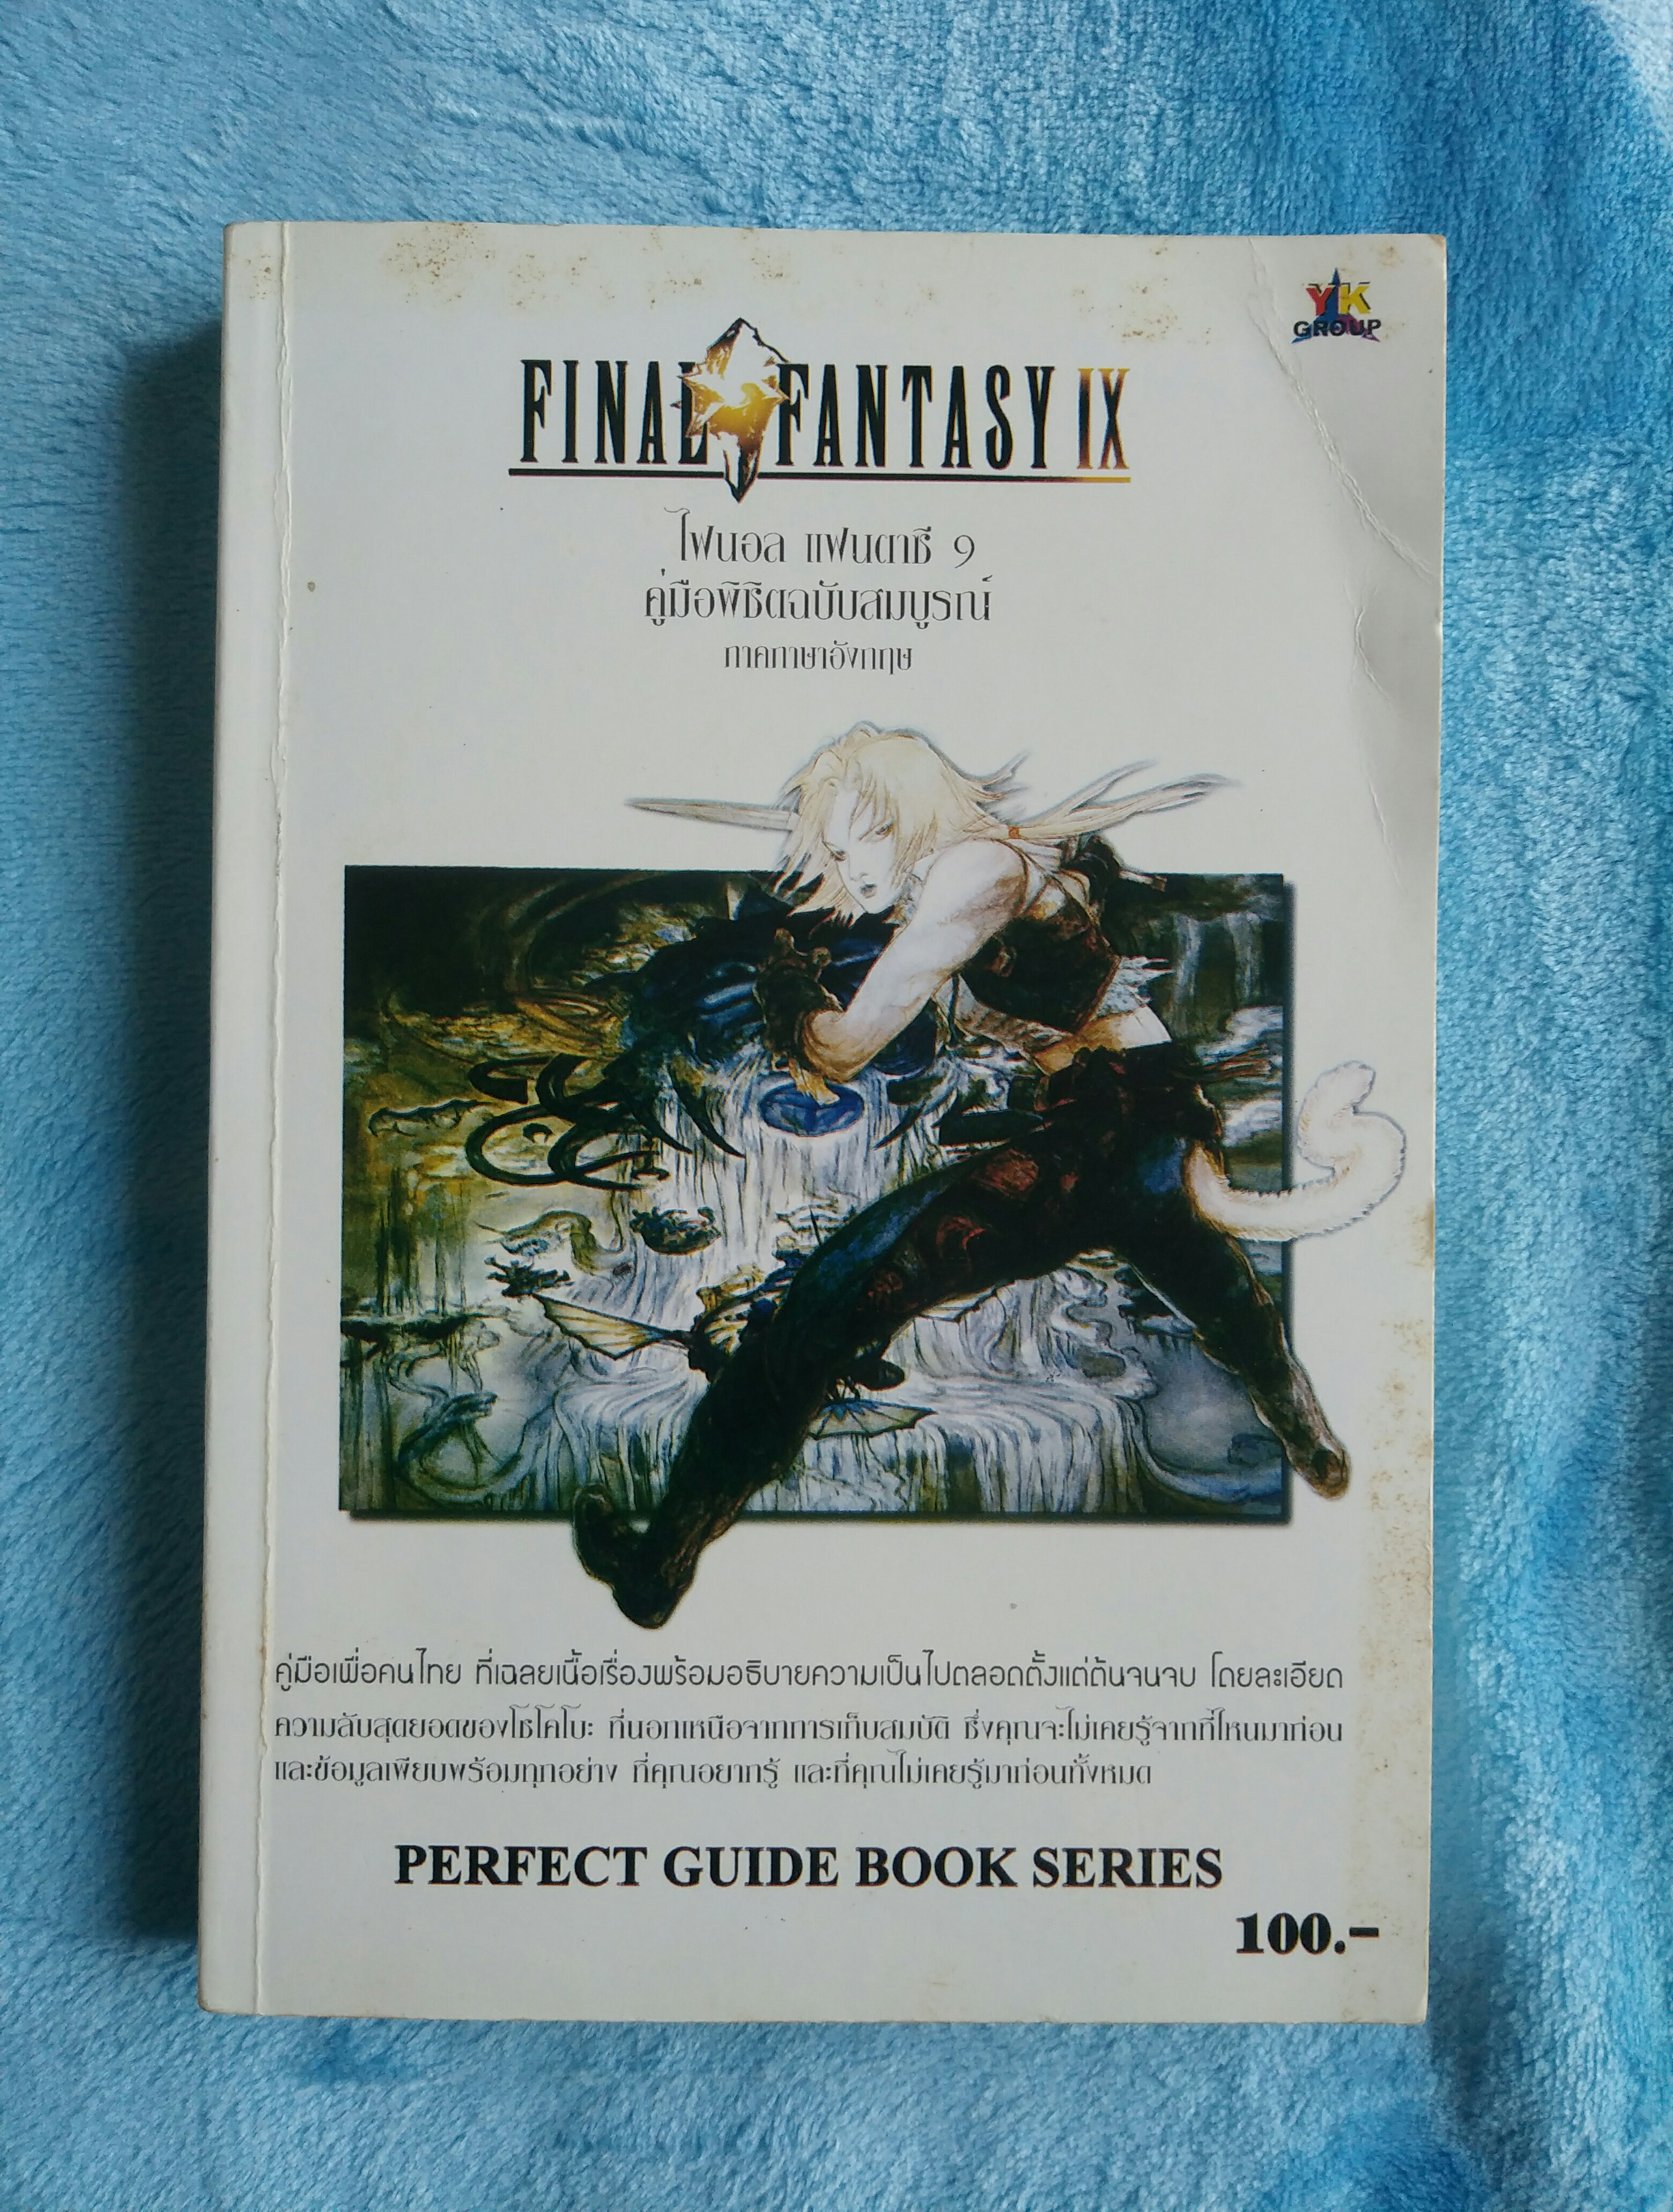 Gameshark Cheat Codes For Final Fantasy 9 idea gallery